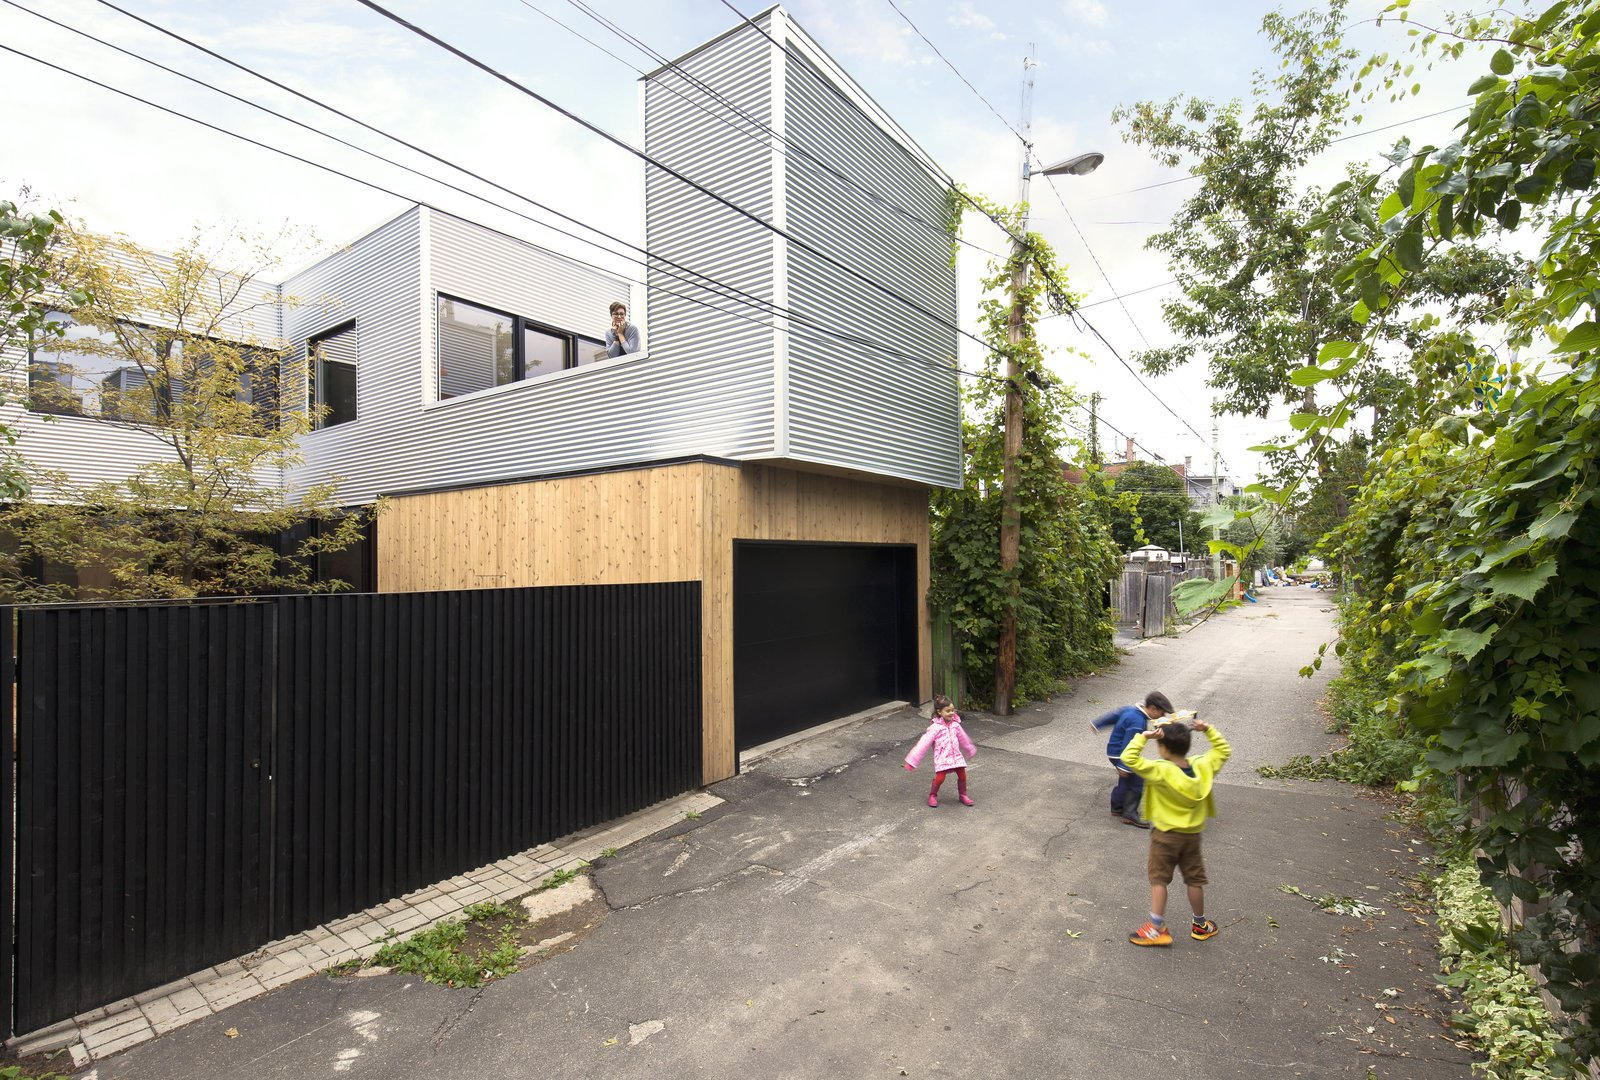 The architects cut away a section of the second floor to make room for a patio. The exterior has been clad in corrugated galvanized steel and cedar planks.  Best Photos from A Transformative Duplex Renovation in Montreal